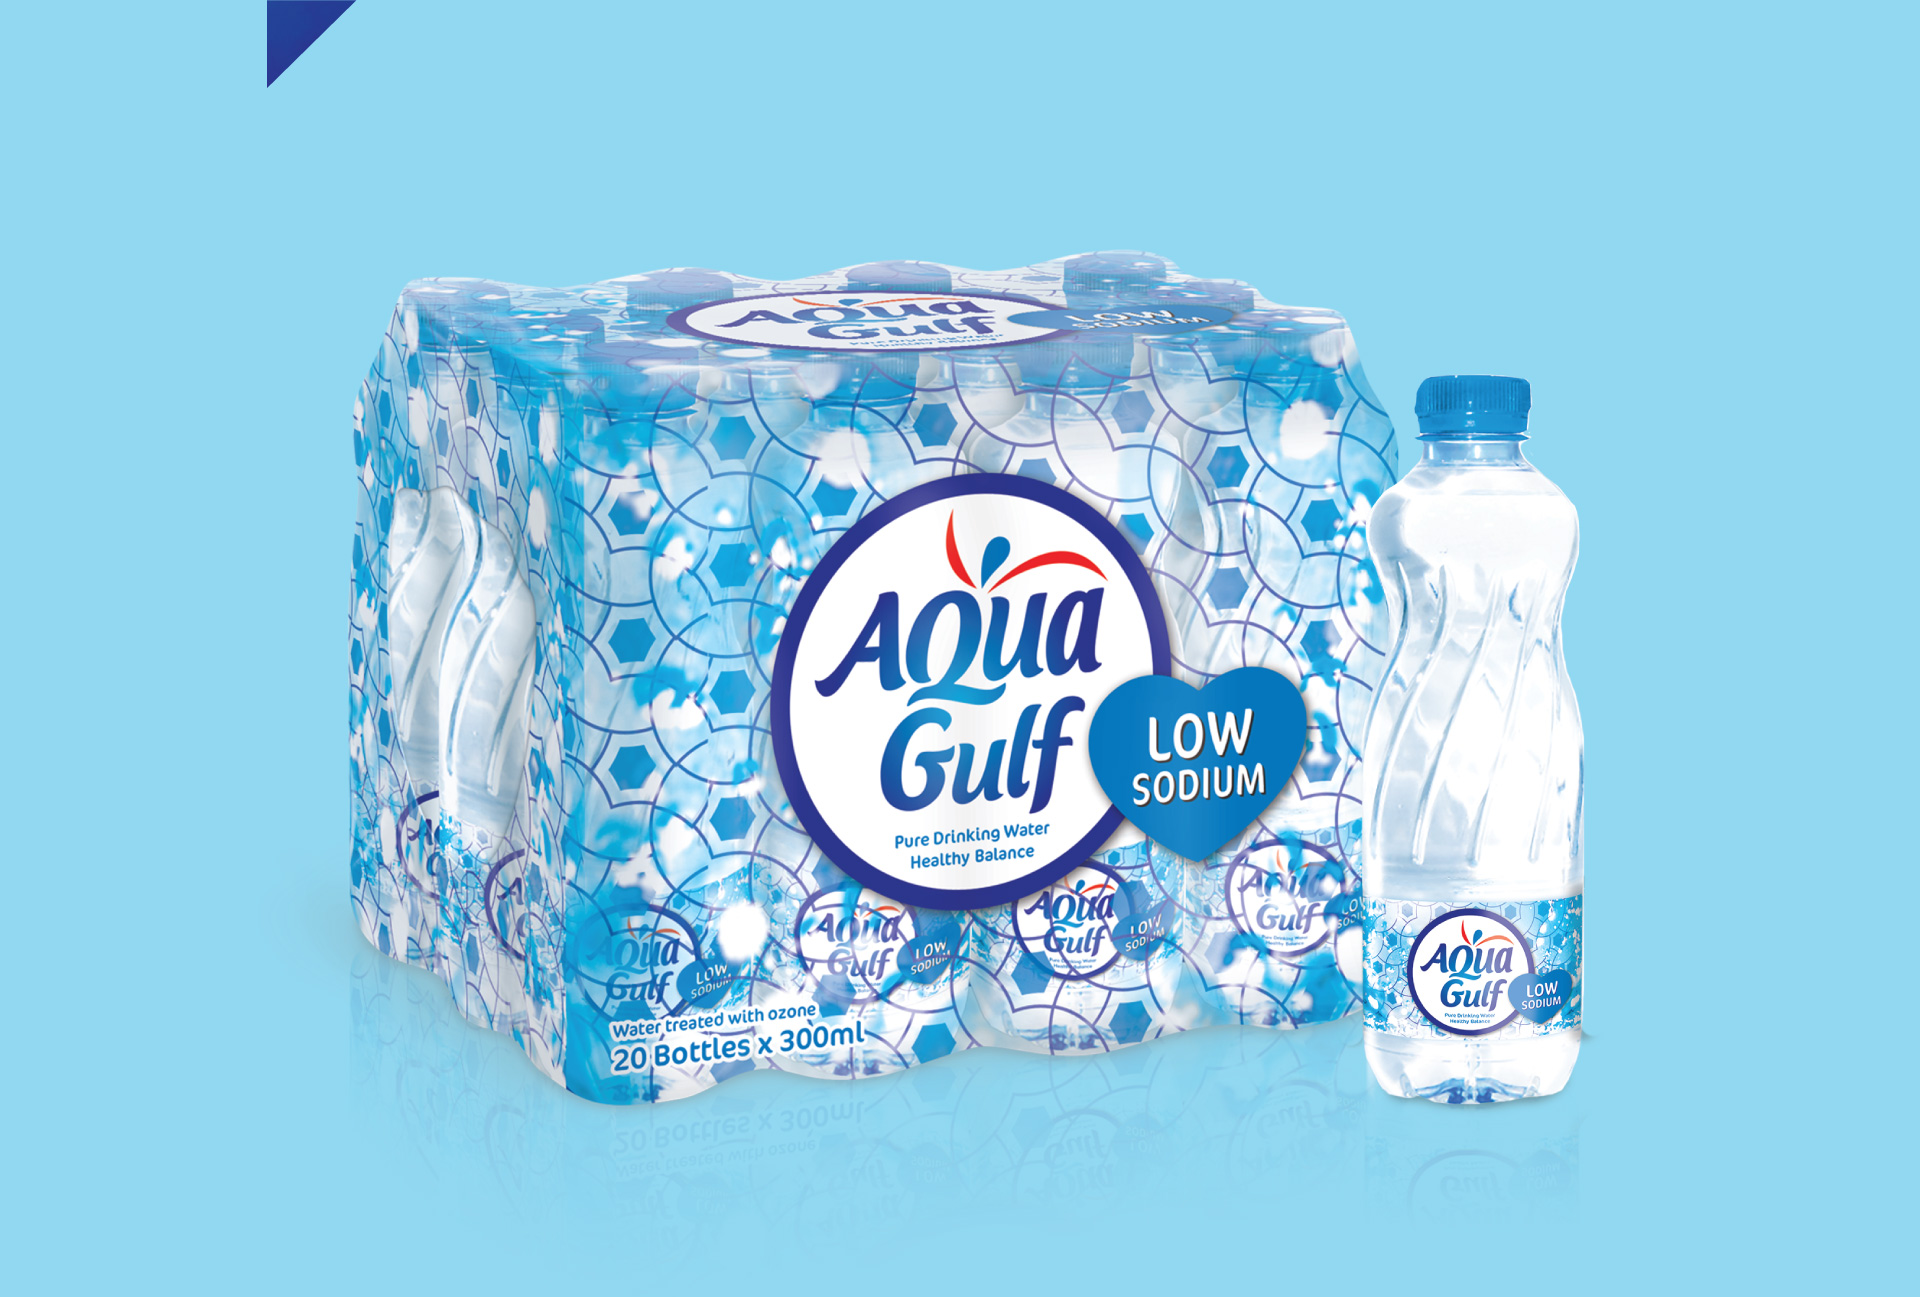 AquaGulf - Brand Packaging Design